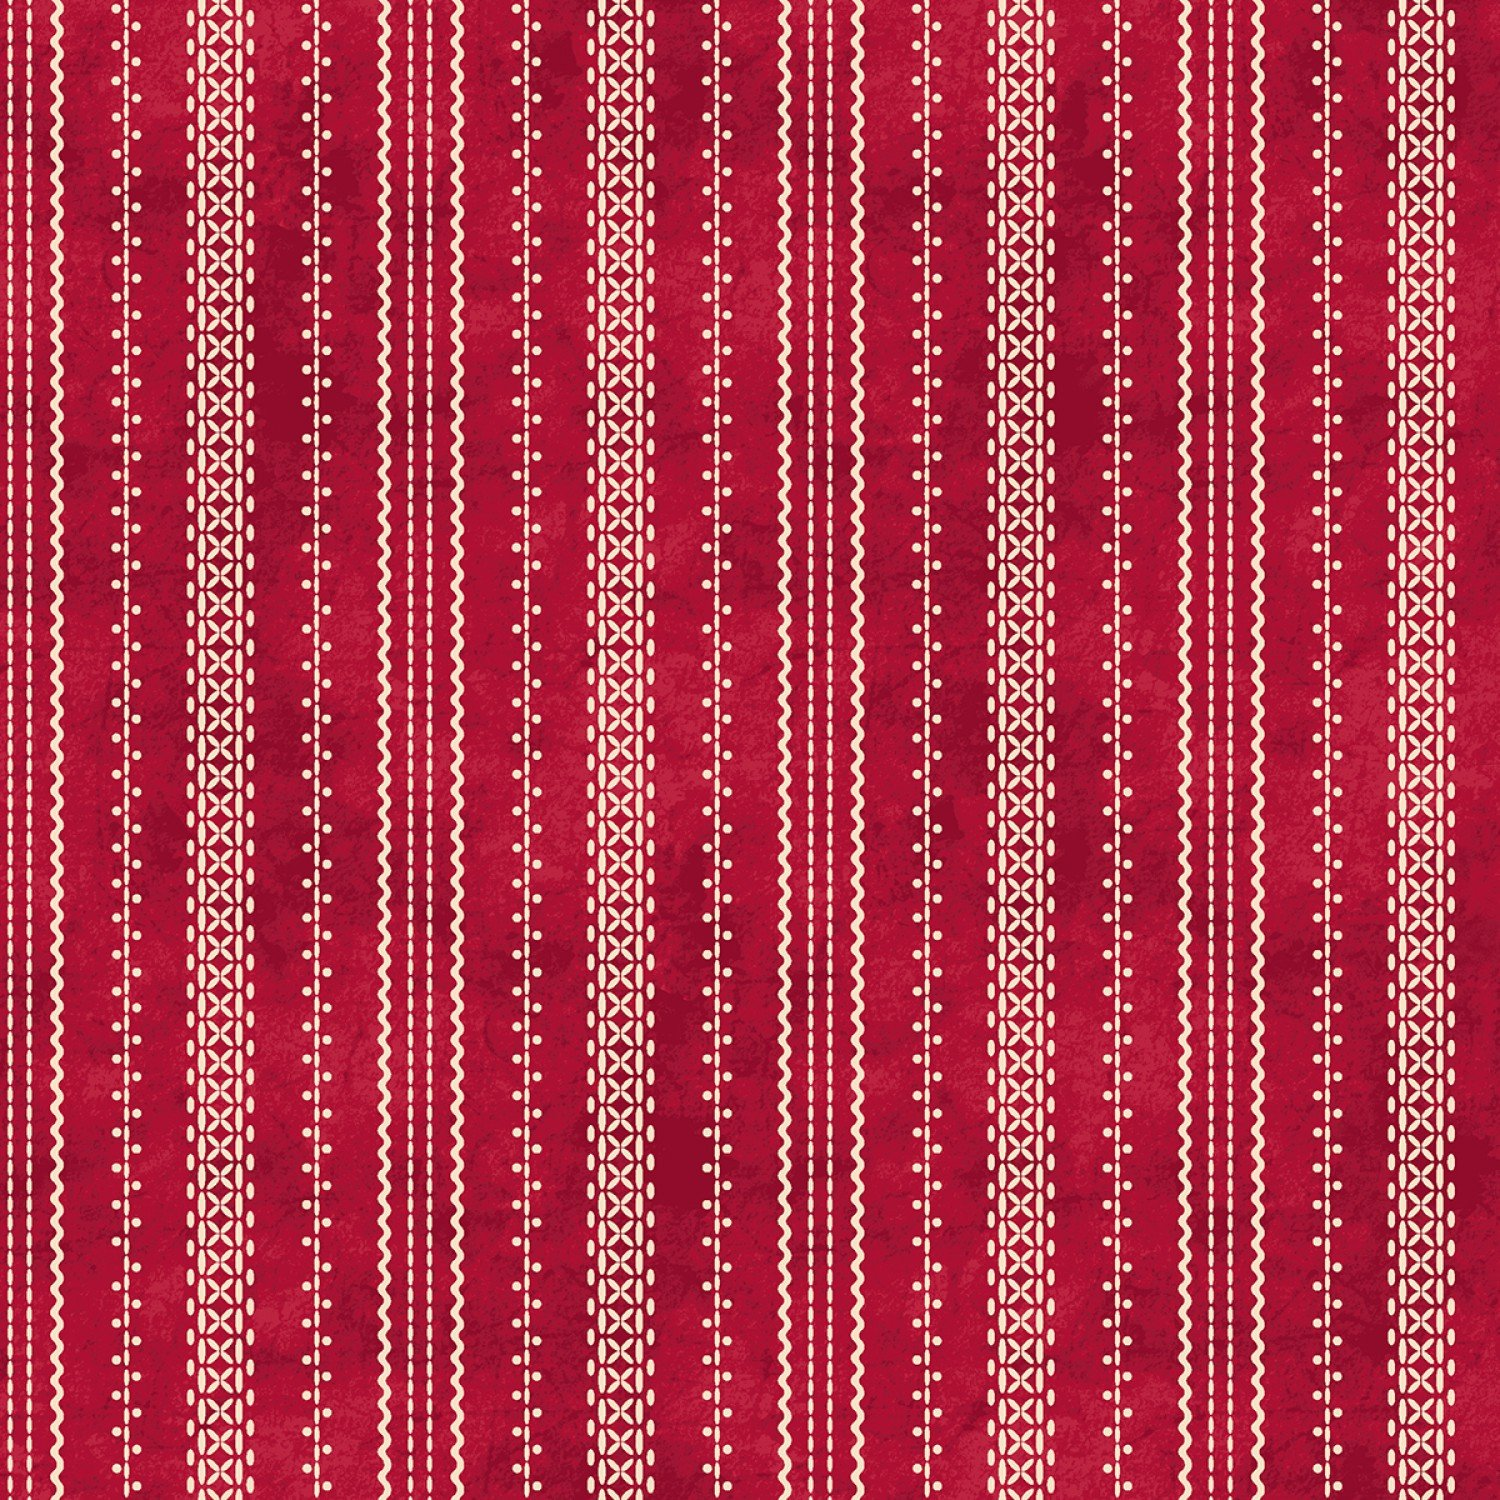 The Little Things - Red Stitched Ticking